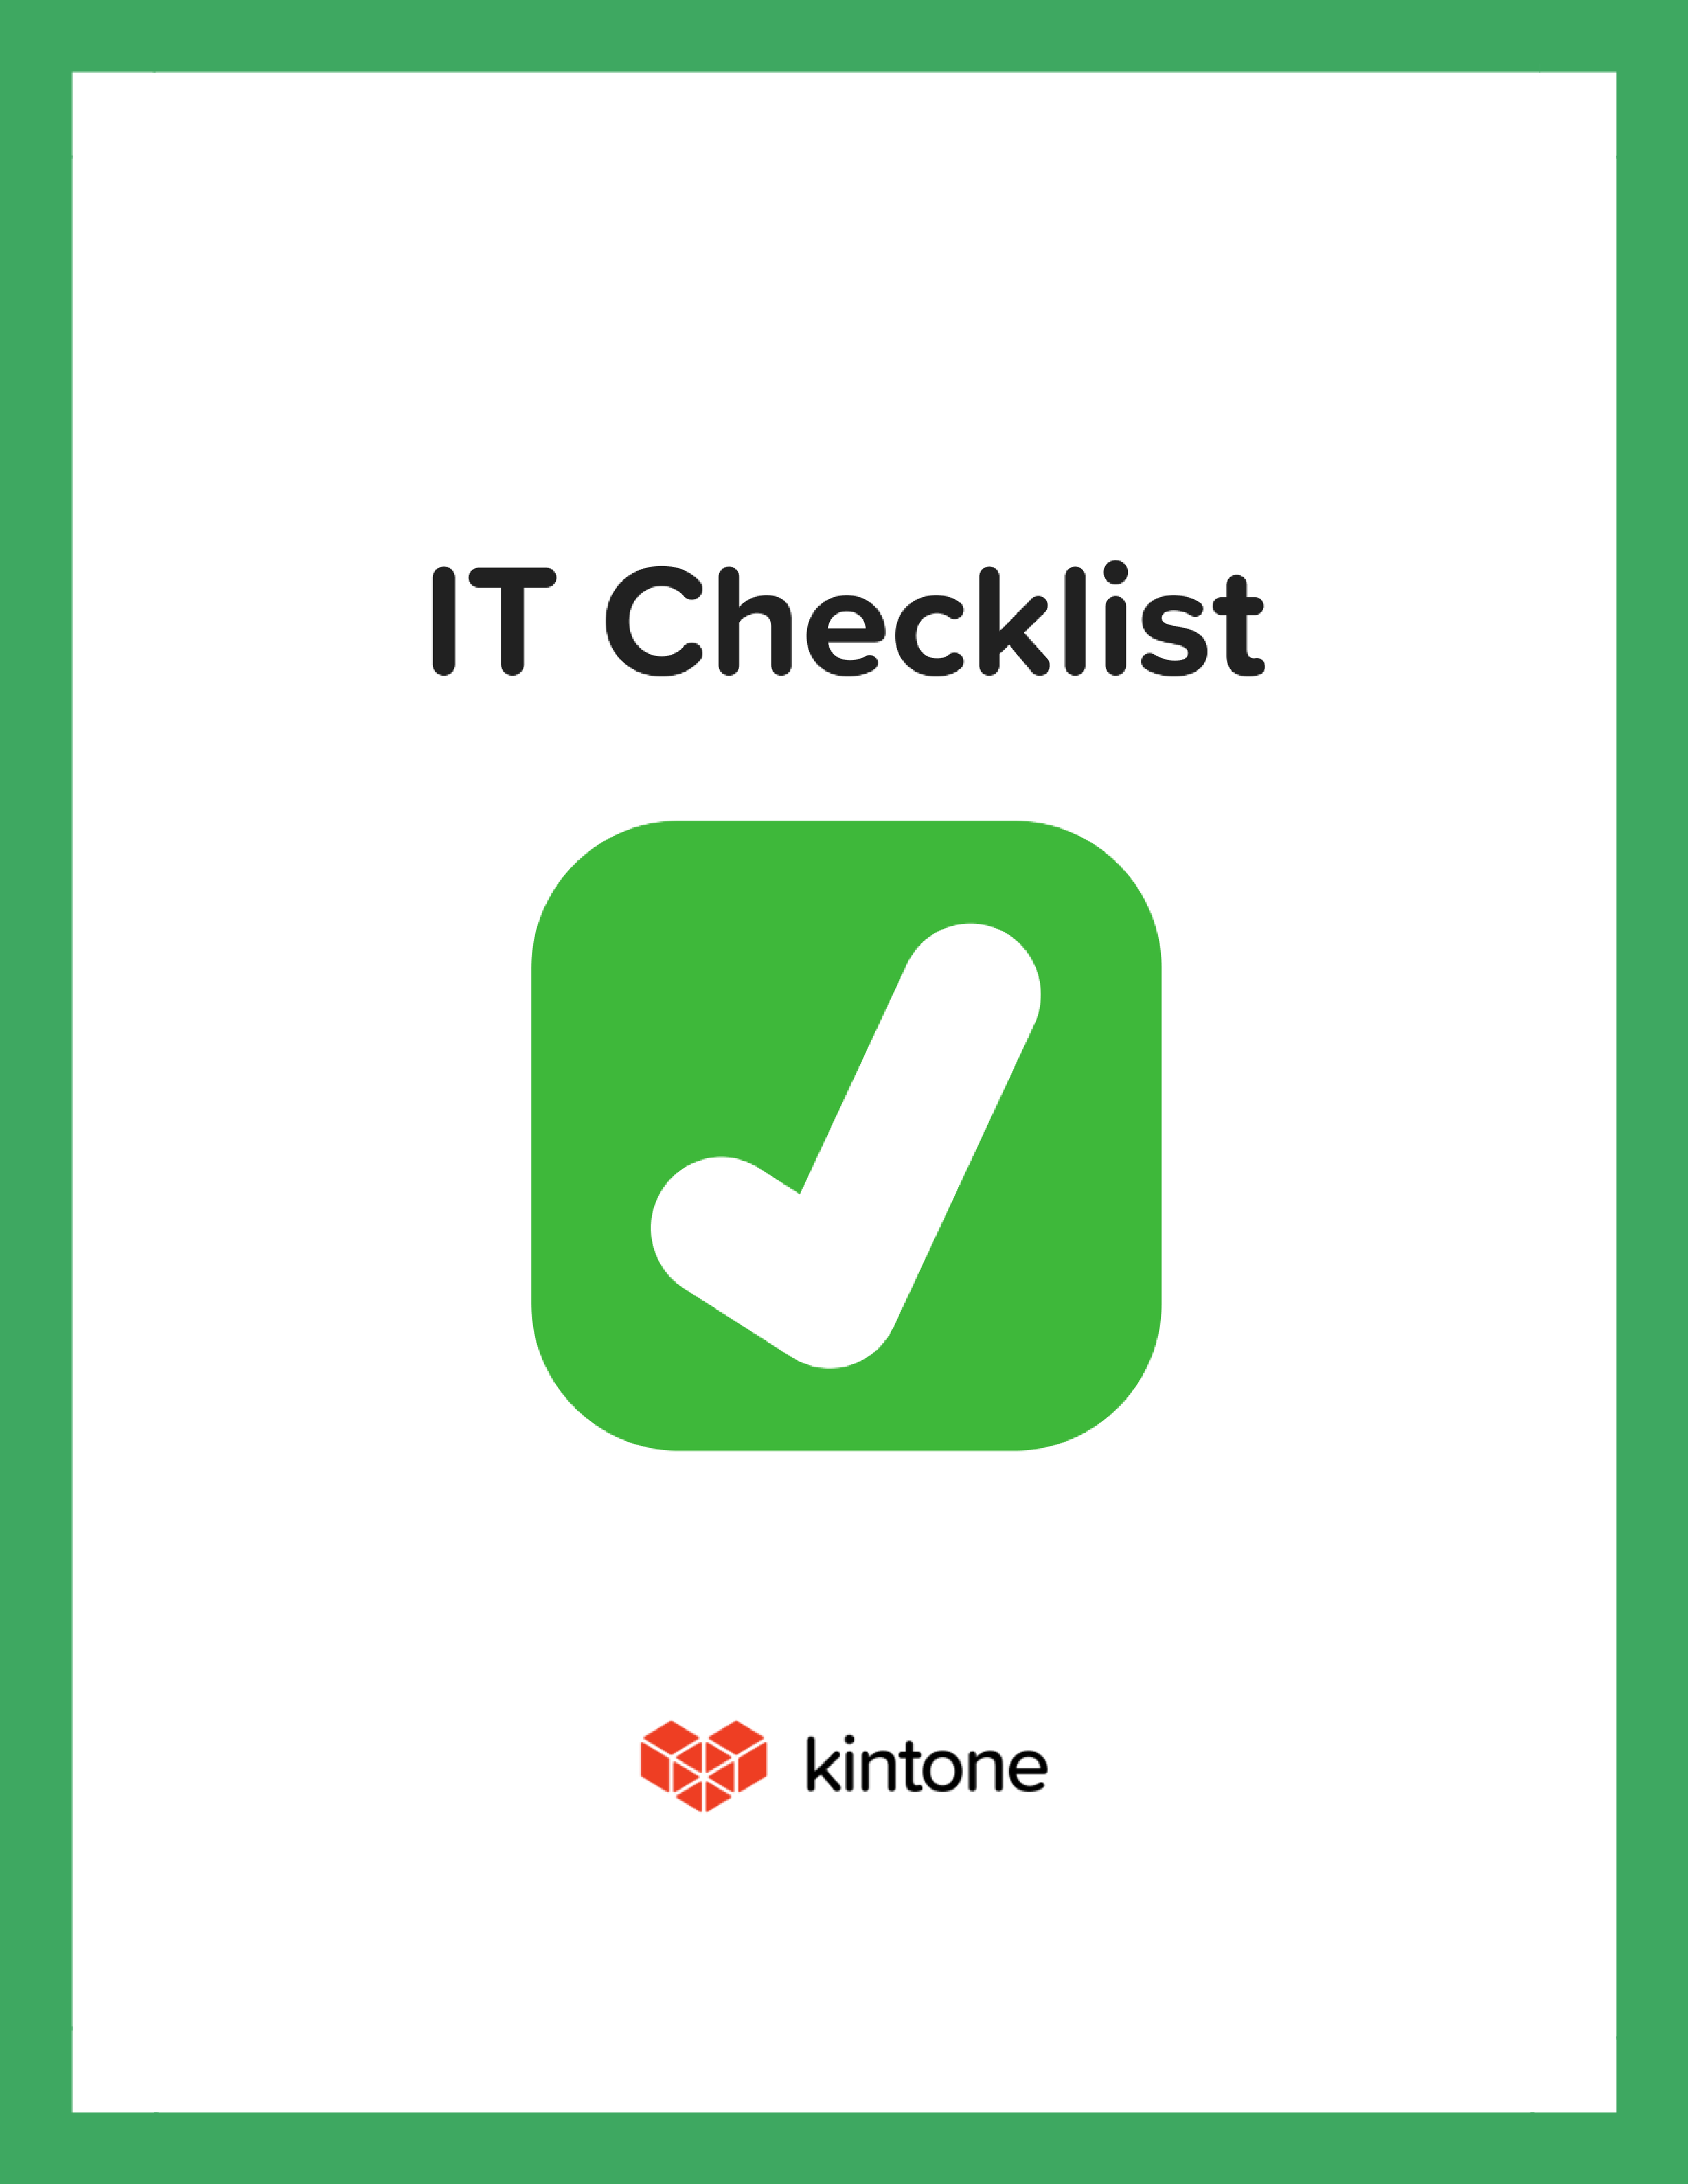 IT Checklist Cover.png